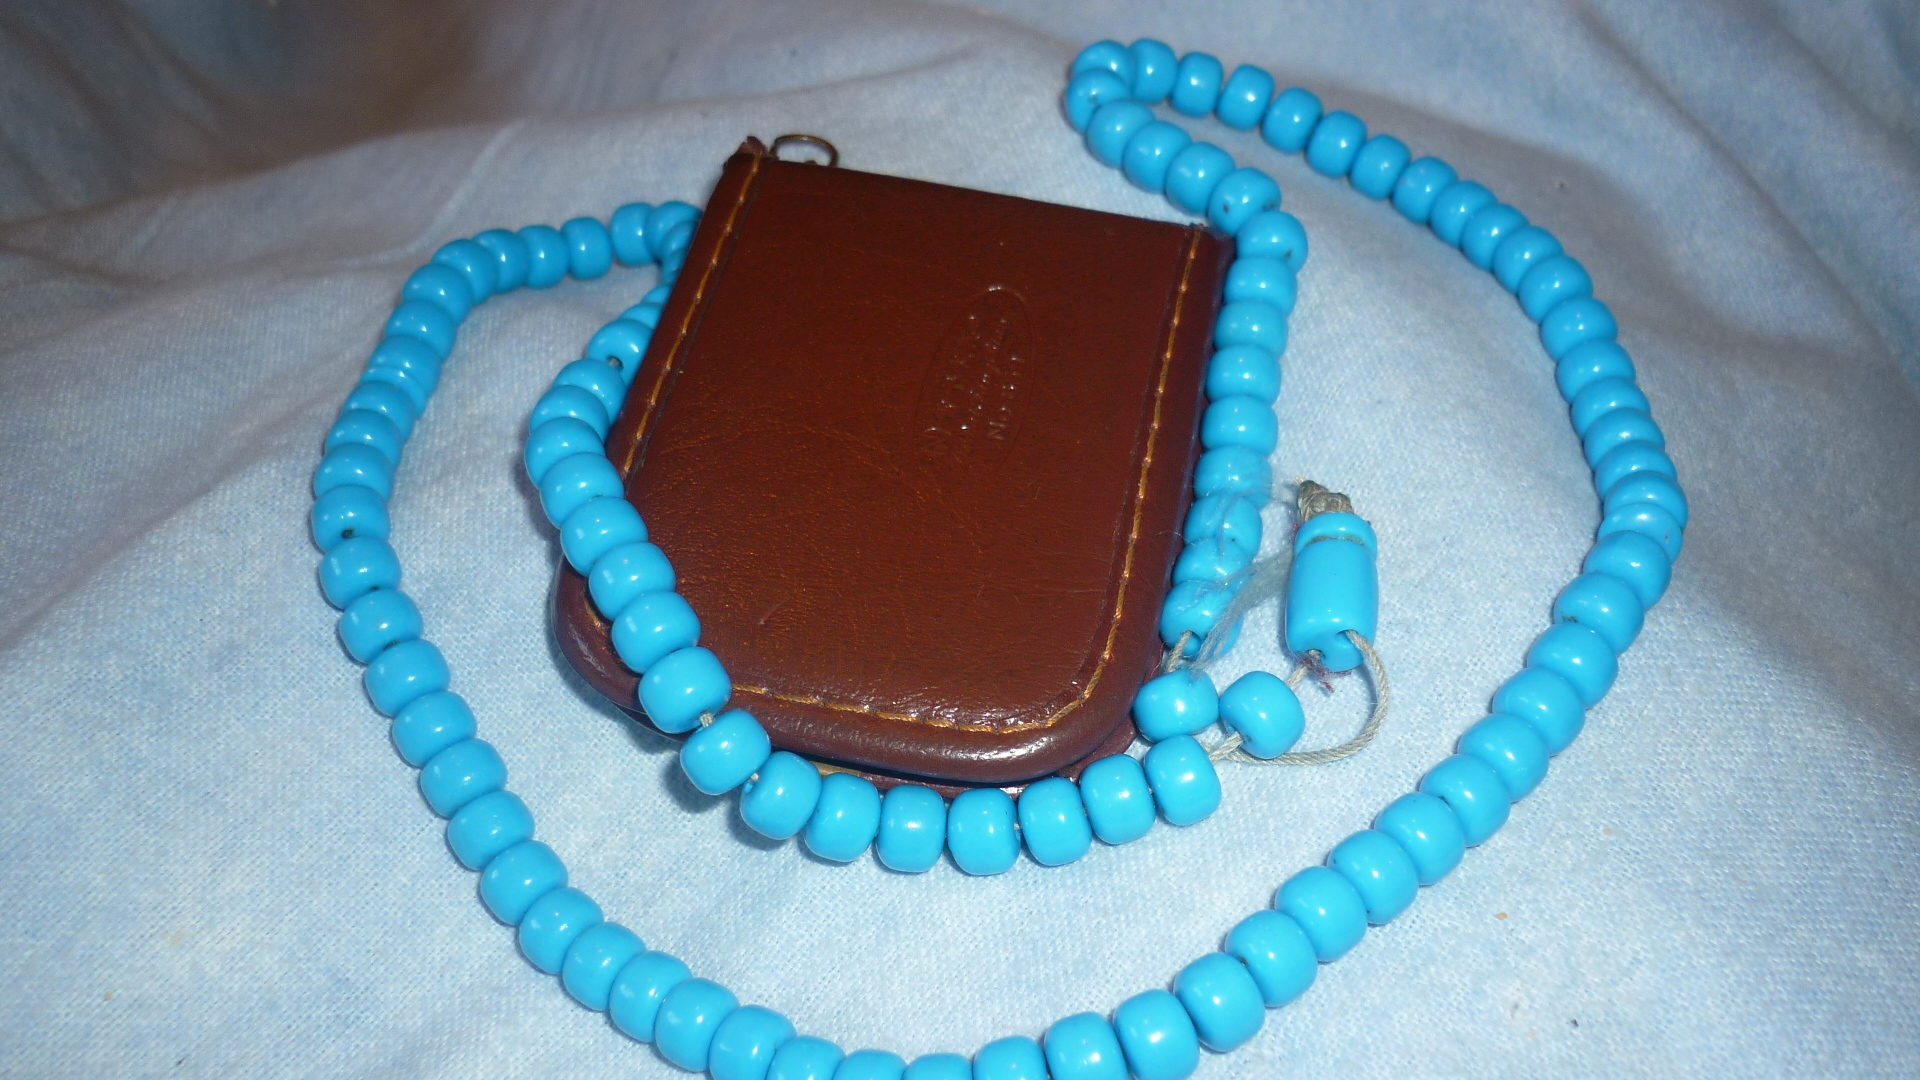 Beads and (closed) phone book